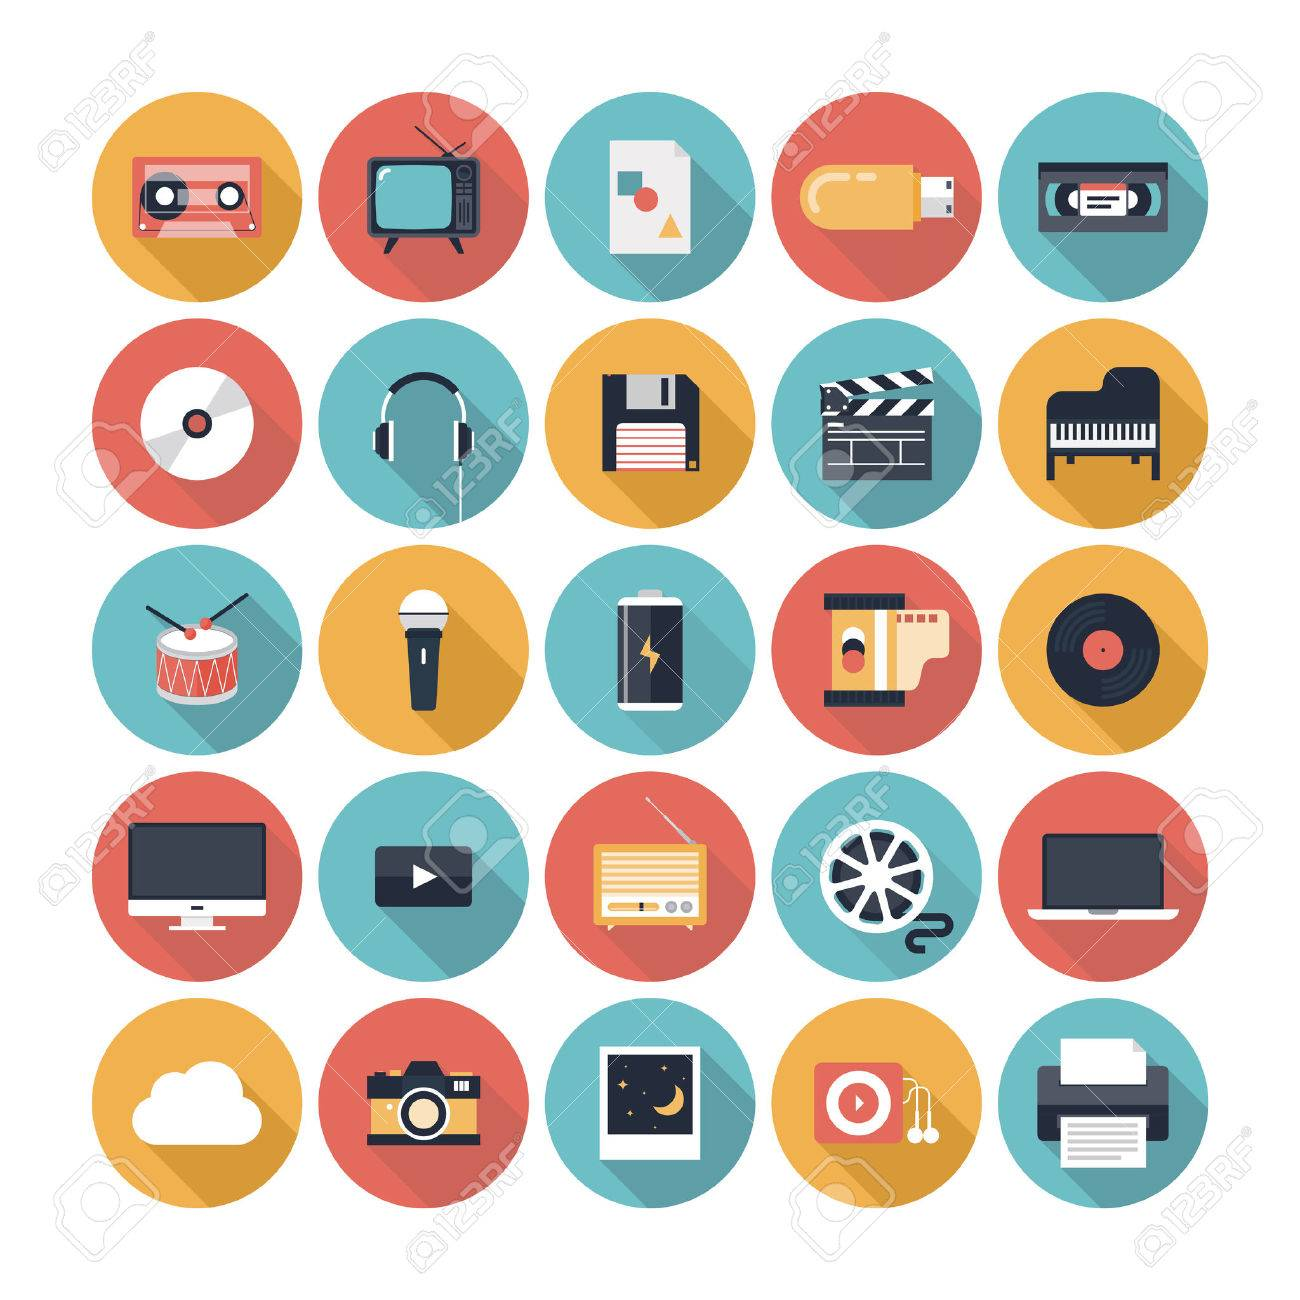 Modern flat icons vector illustration collection with long shadow design effect in stylish colors of  multimedia symbols, sound instruments, audio and video items and objects  Isolated on white background Stock Vector - 23864958